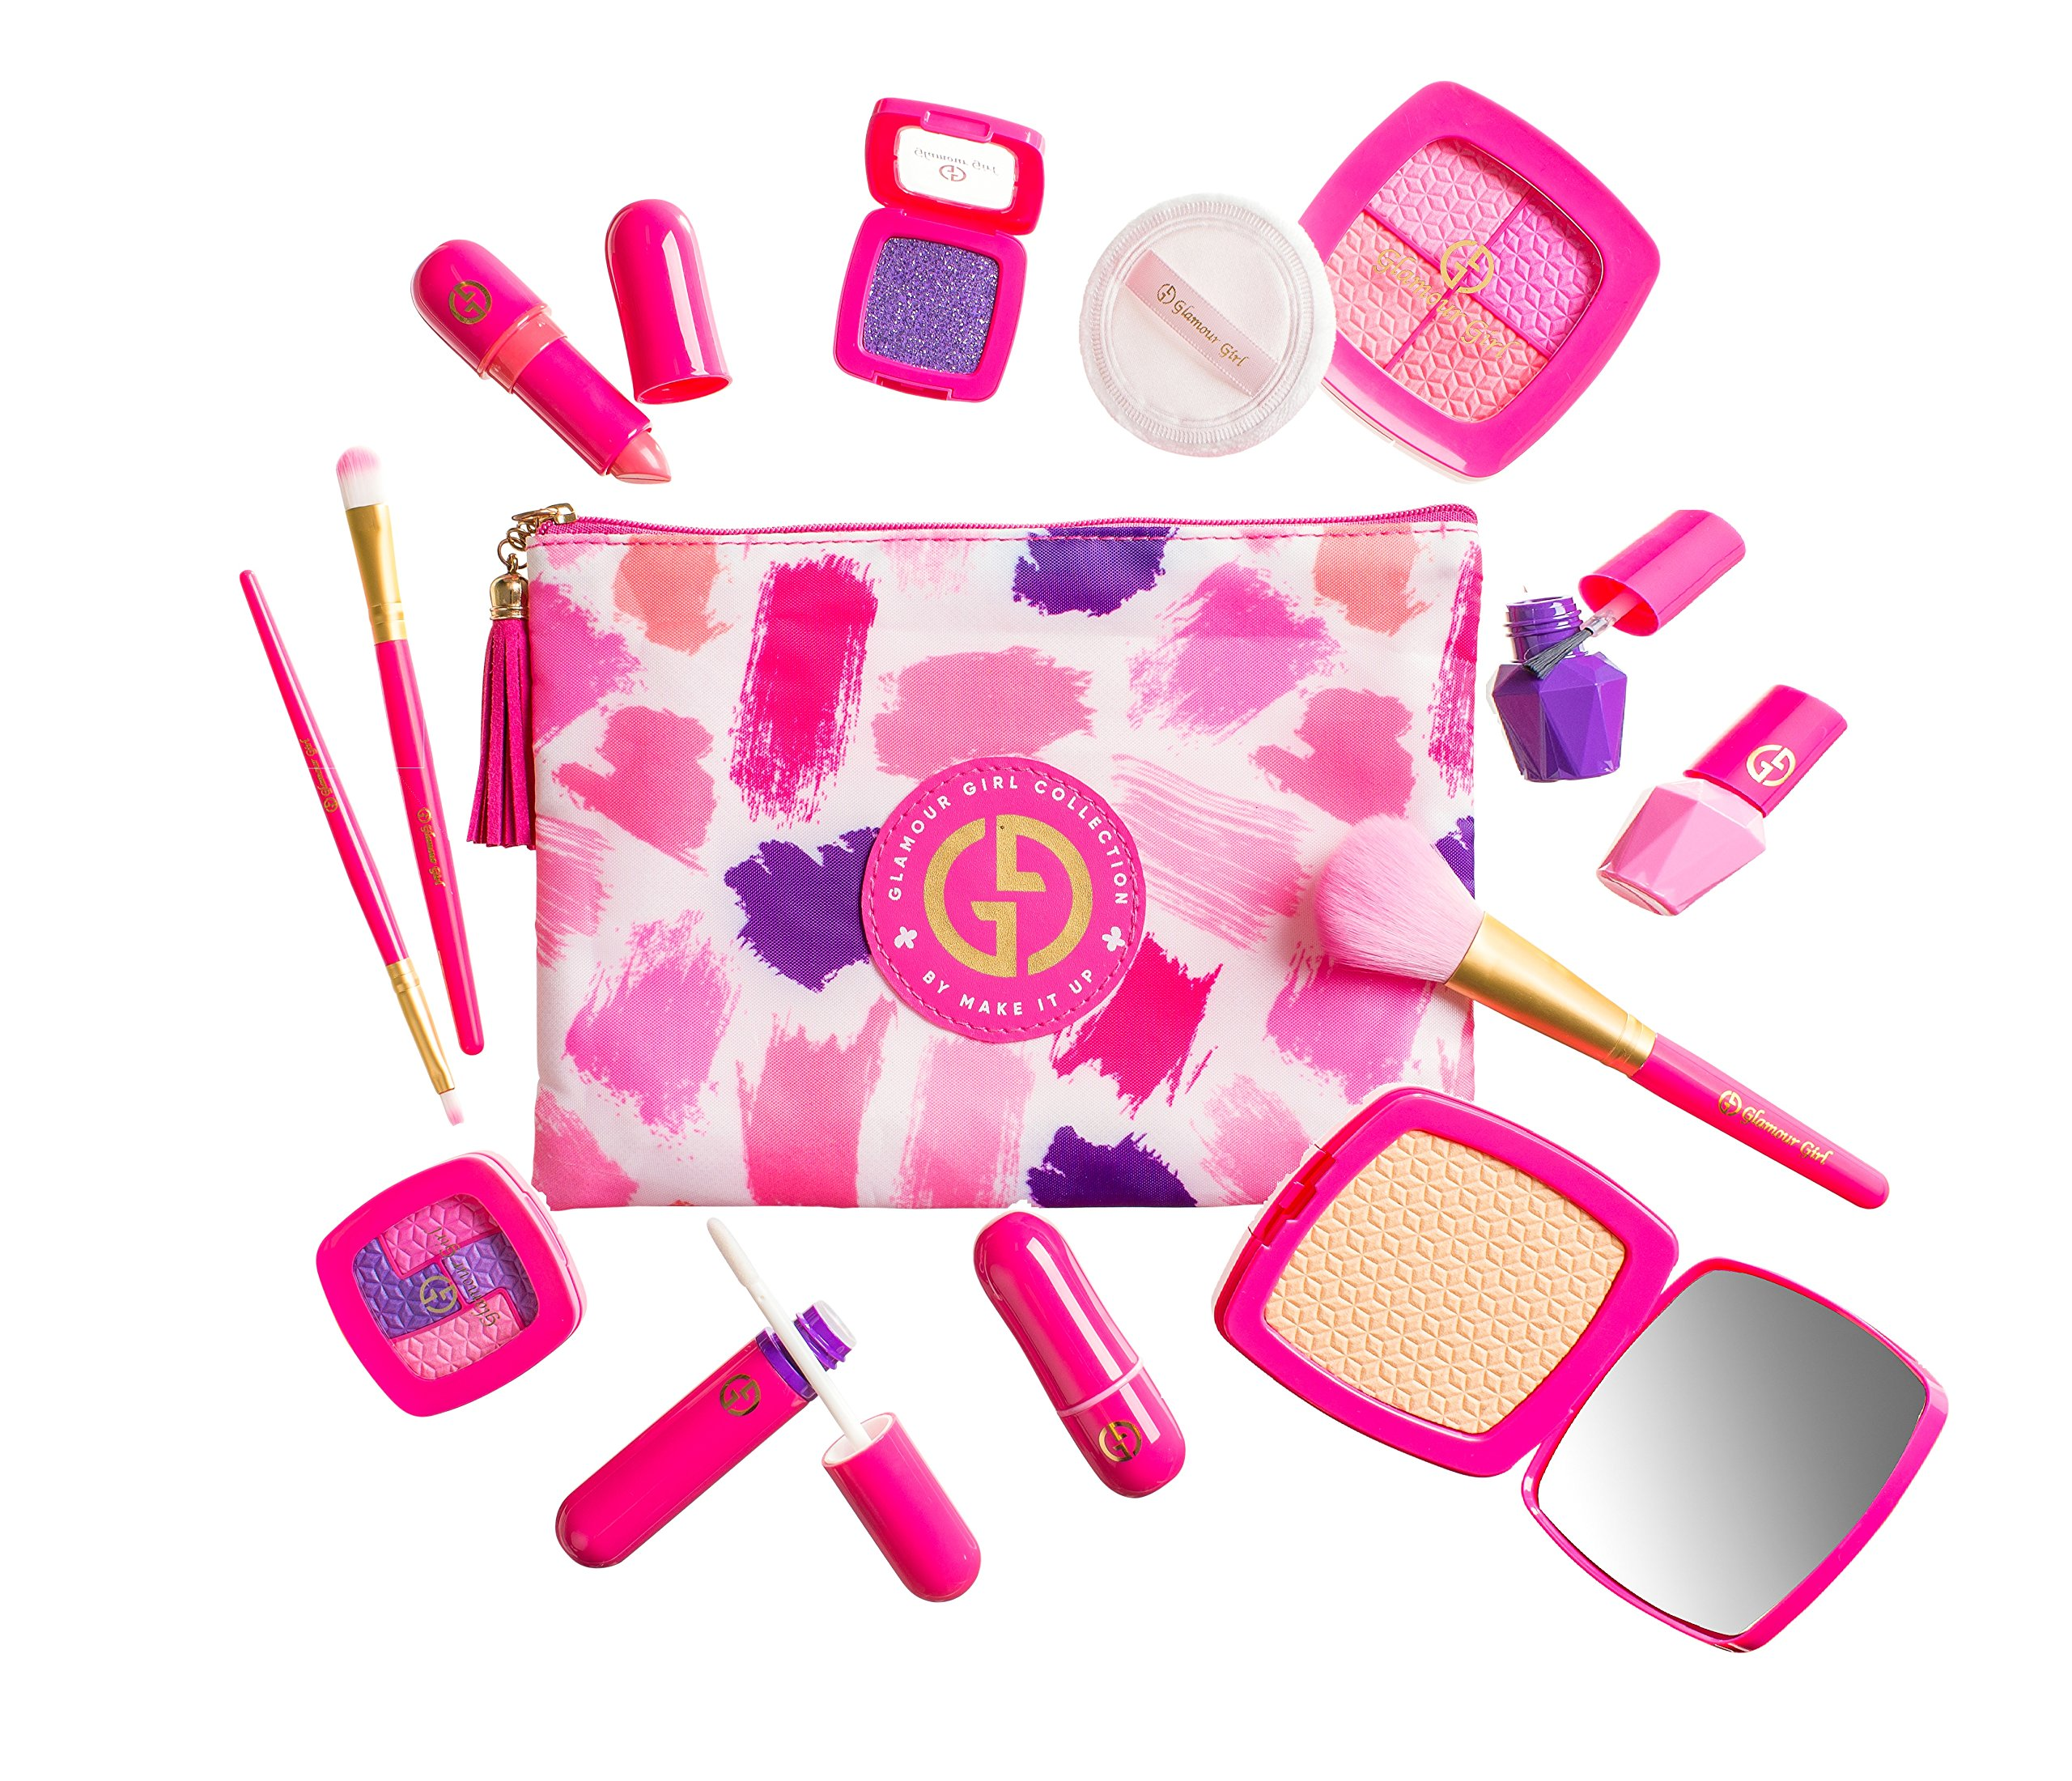 Make it Up, Glamour Girl Pretend Play Makeup Set for Children - Great for Little Girls & Kids (Not Real Makeup) [Toy] by Make it Up